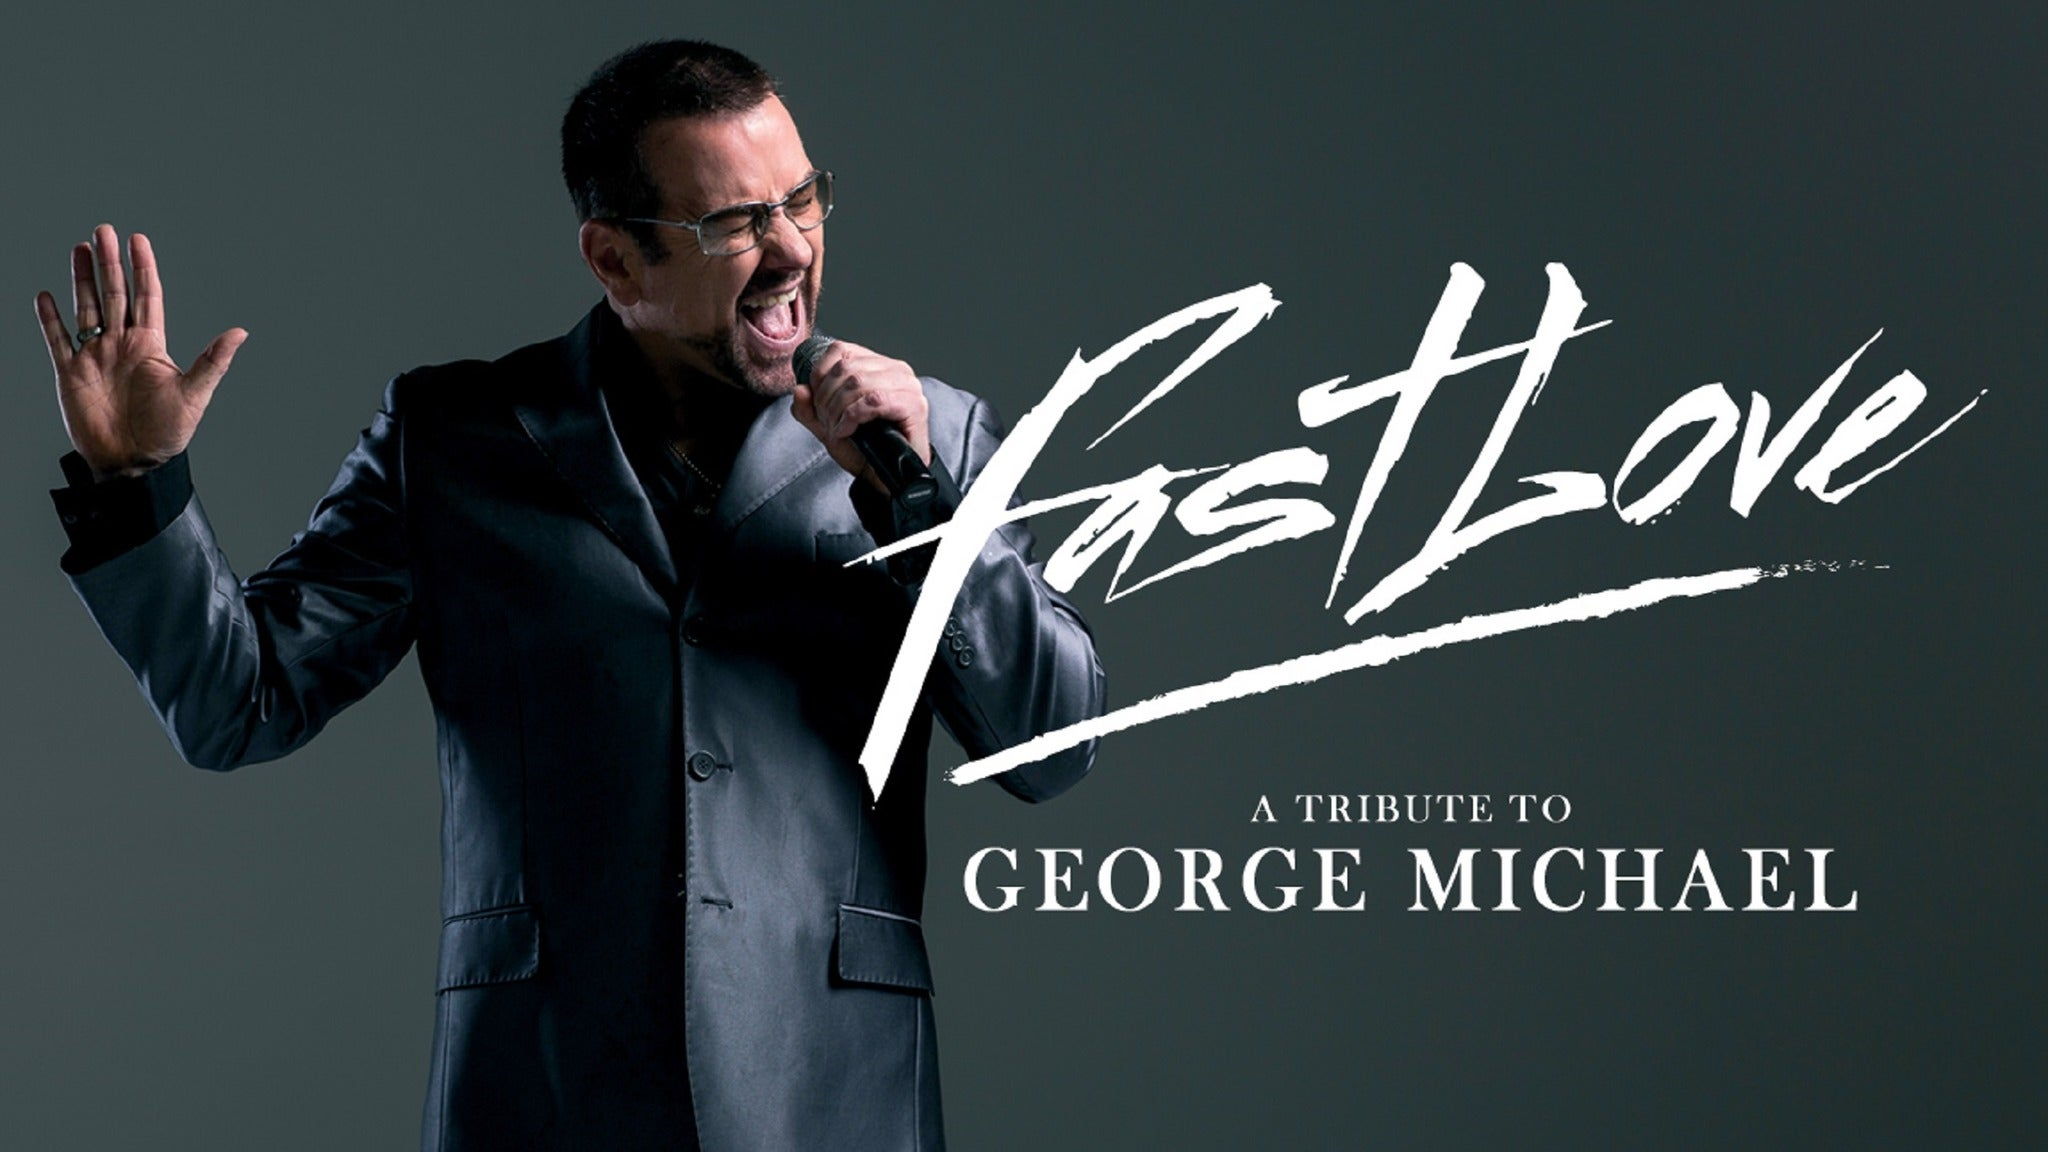 Fast Love - a Tribute To George Michael